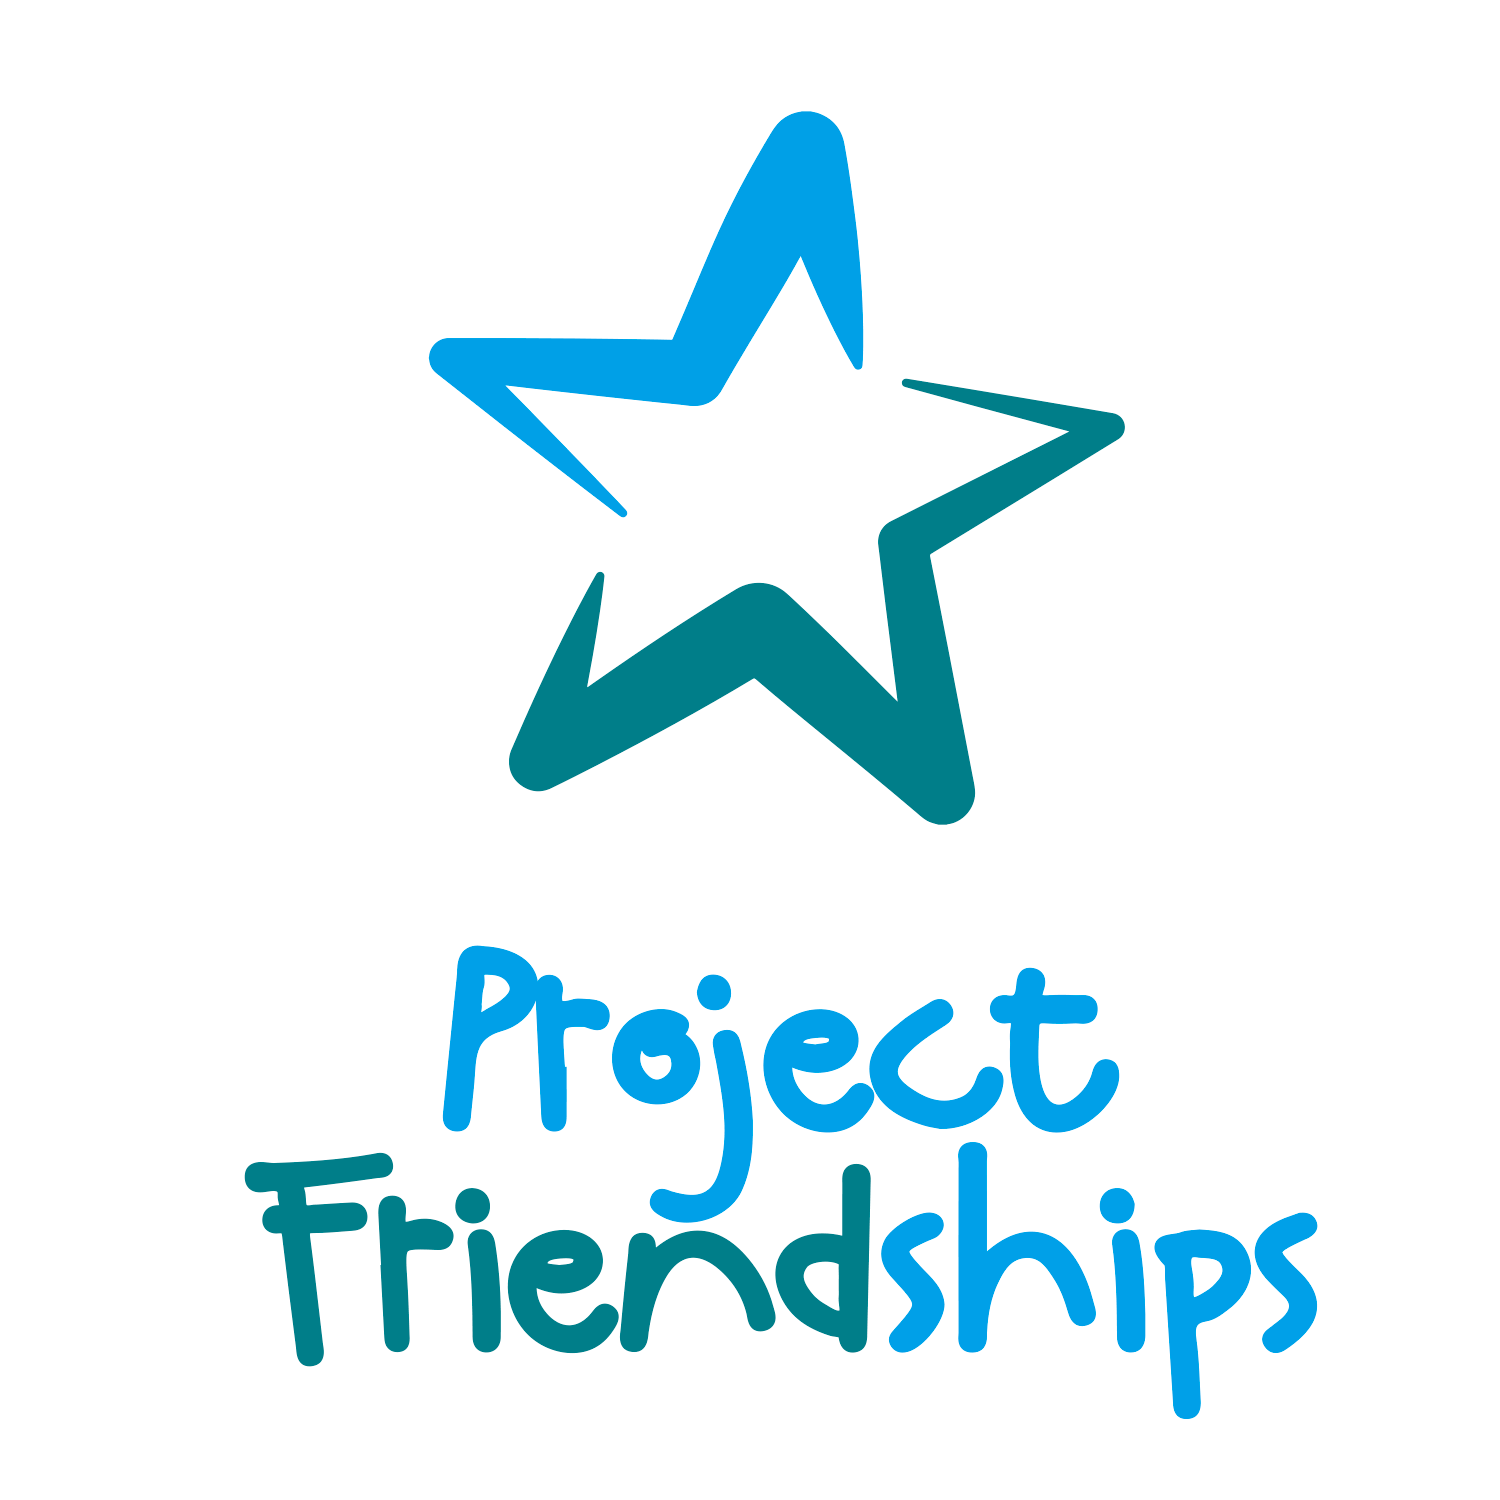 Project Friendships logo